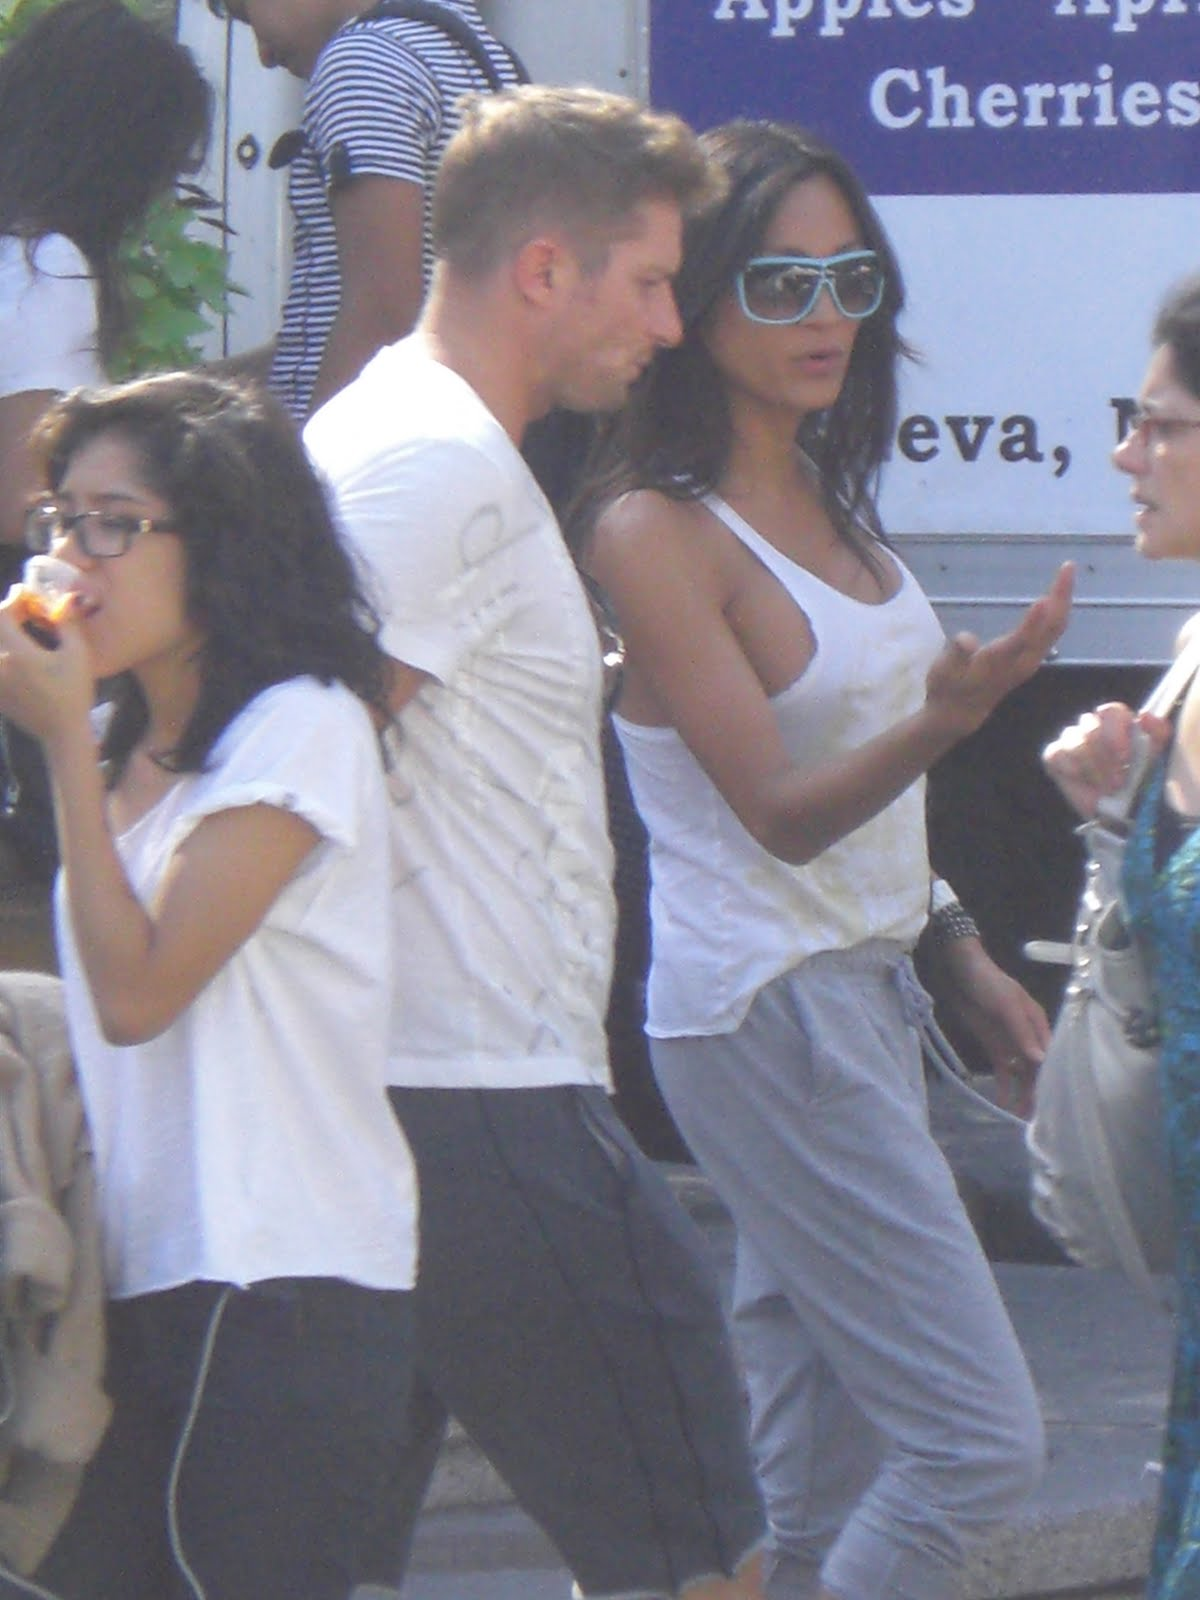 Bra with no woman walking Video shows